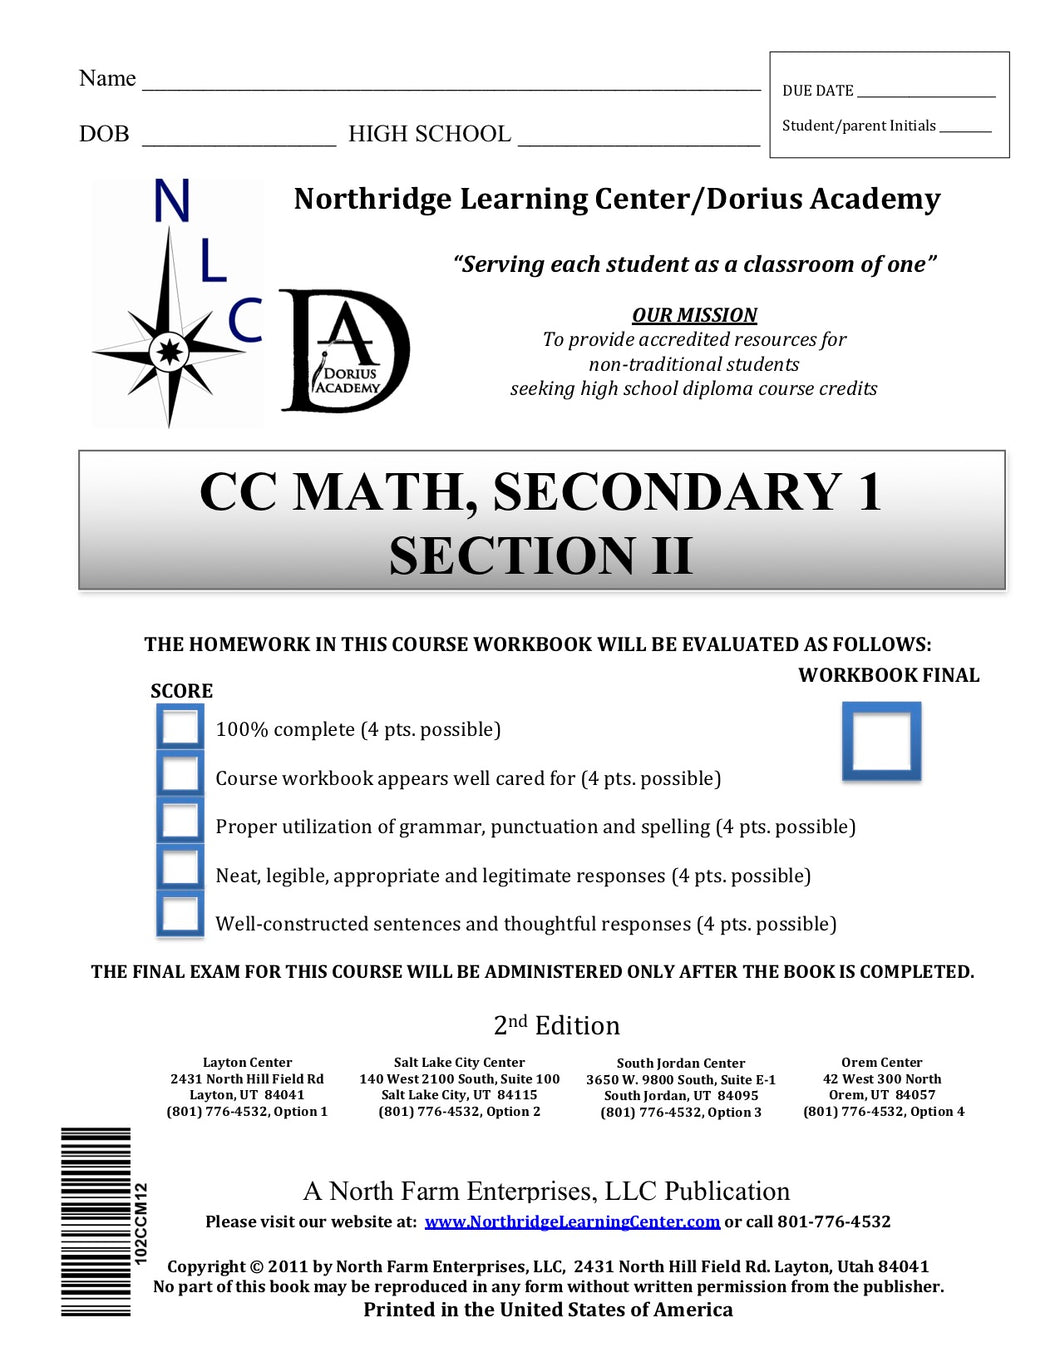 CC Math, Secondary 1, Section II